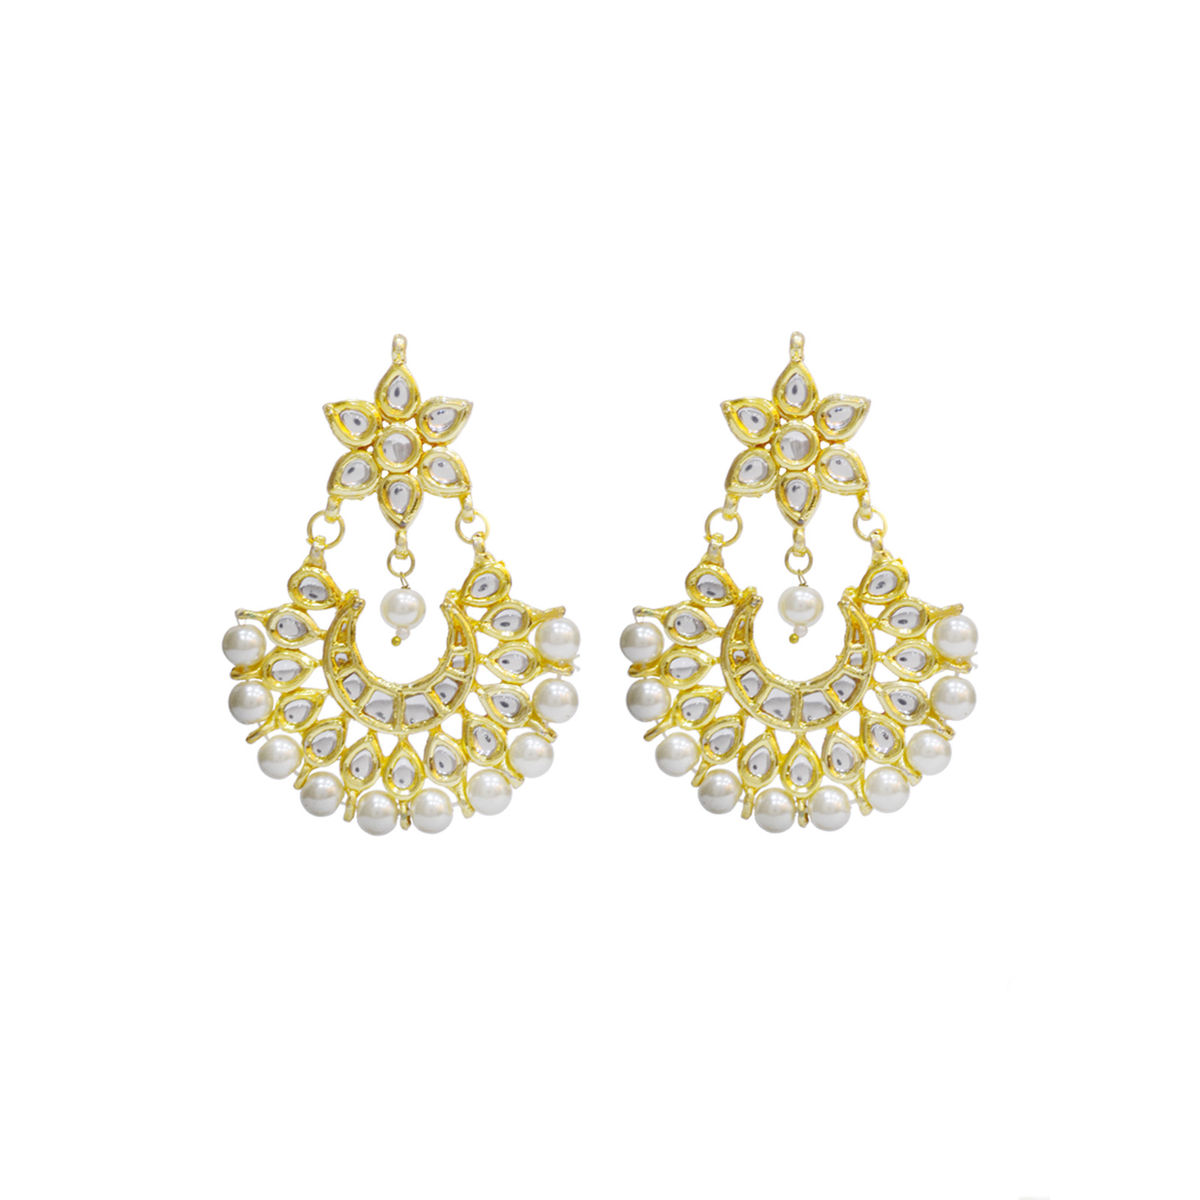 Small Kundan Chandbali Earrings